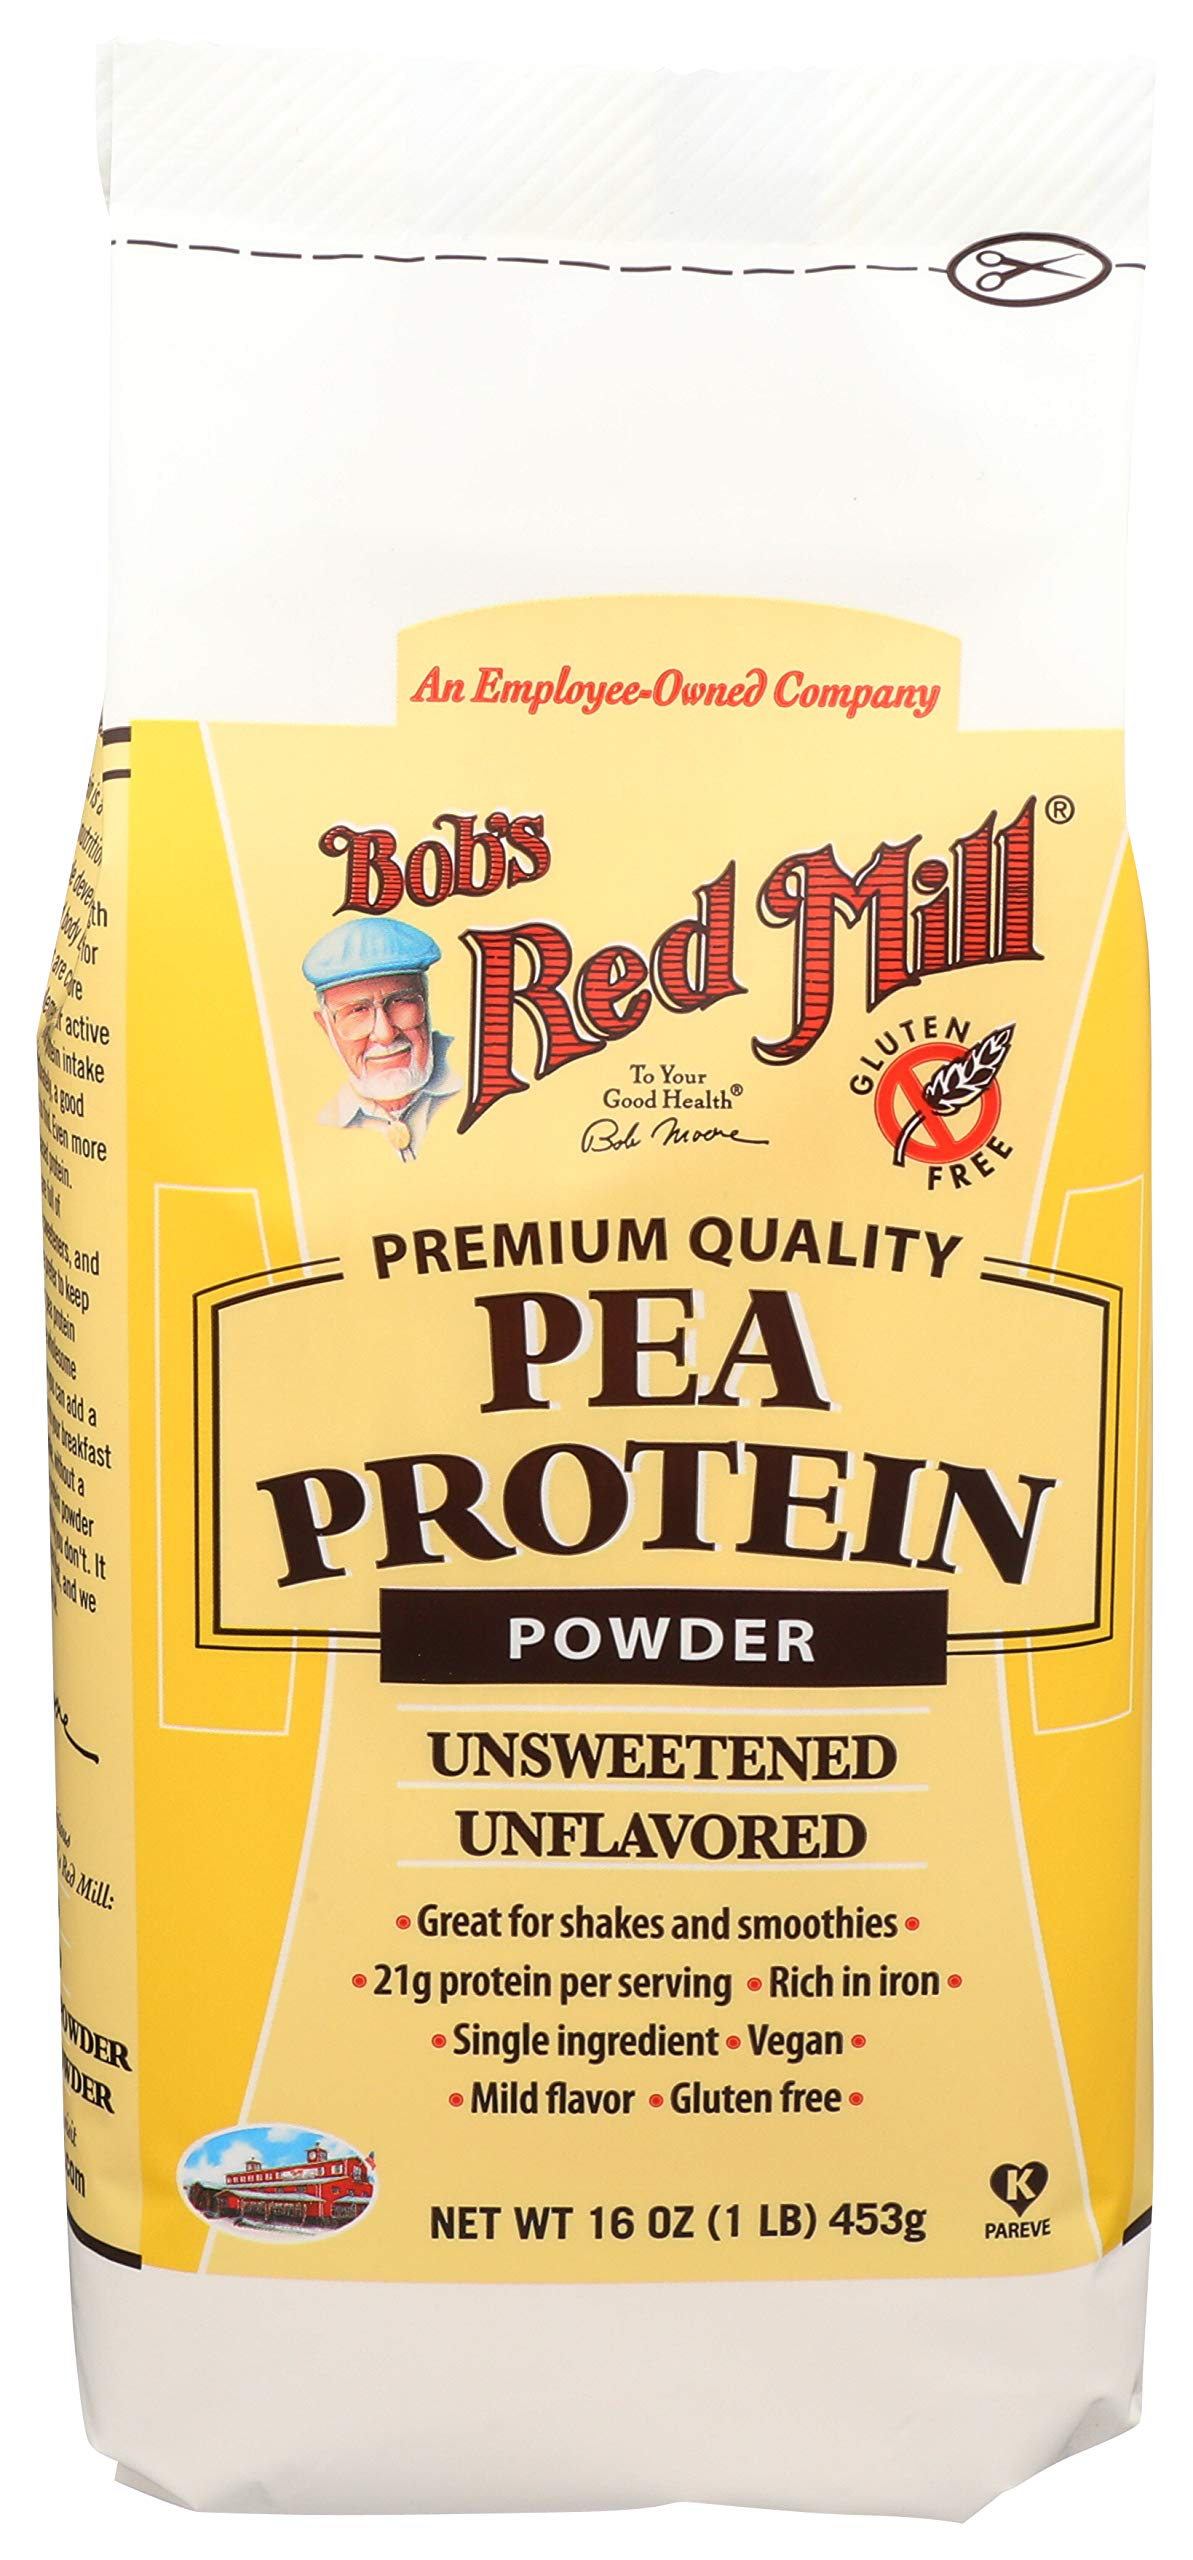 Bob's Red Mill Pea Protein Powder, 16 Ounce by Bob's Red Mill